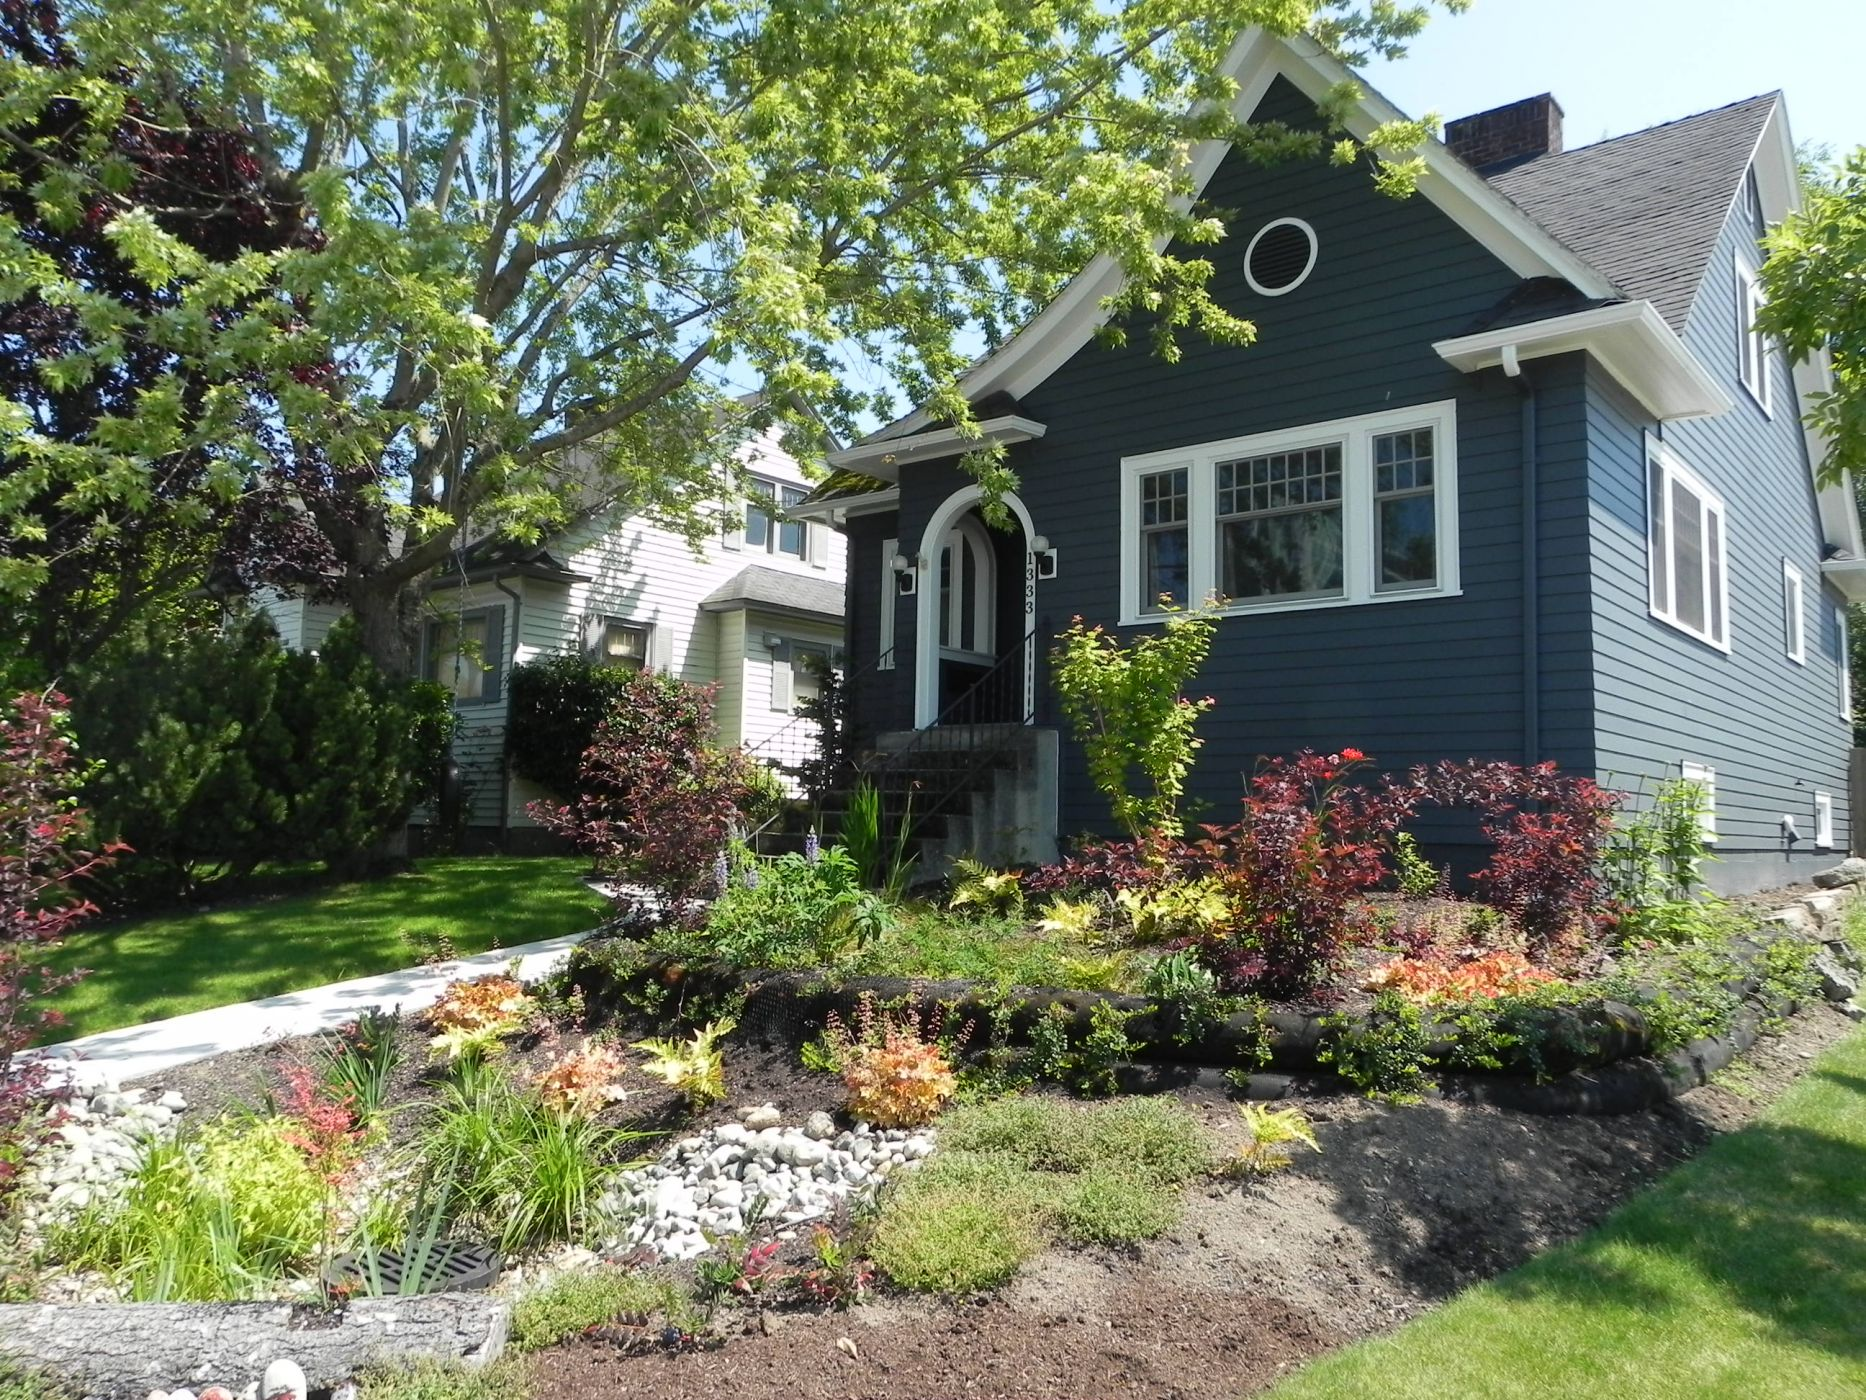 Rain Gardens Demystified: Why Including One in Your Landscape